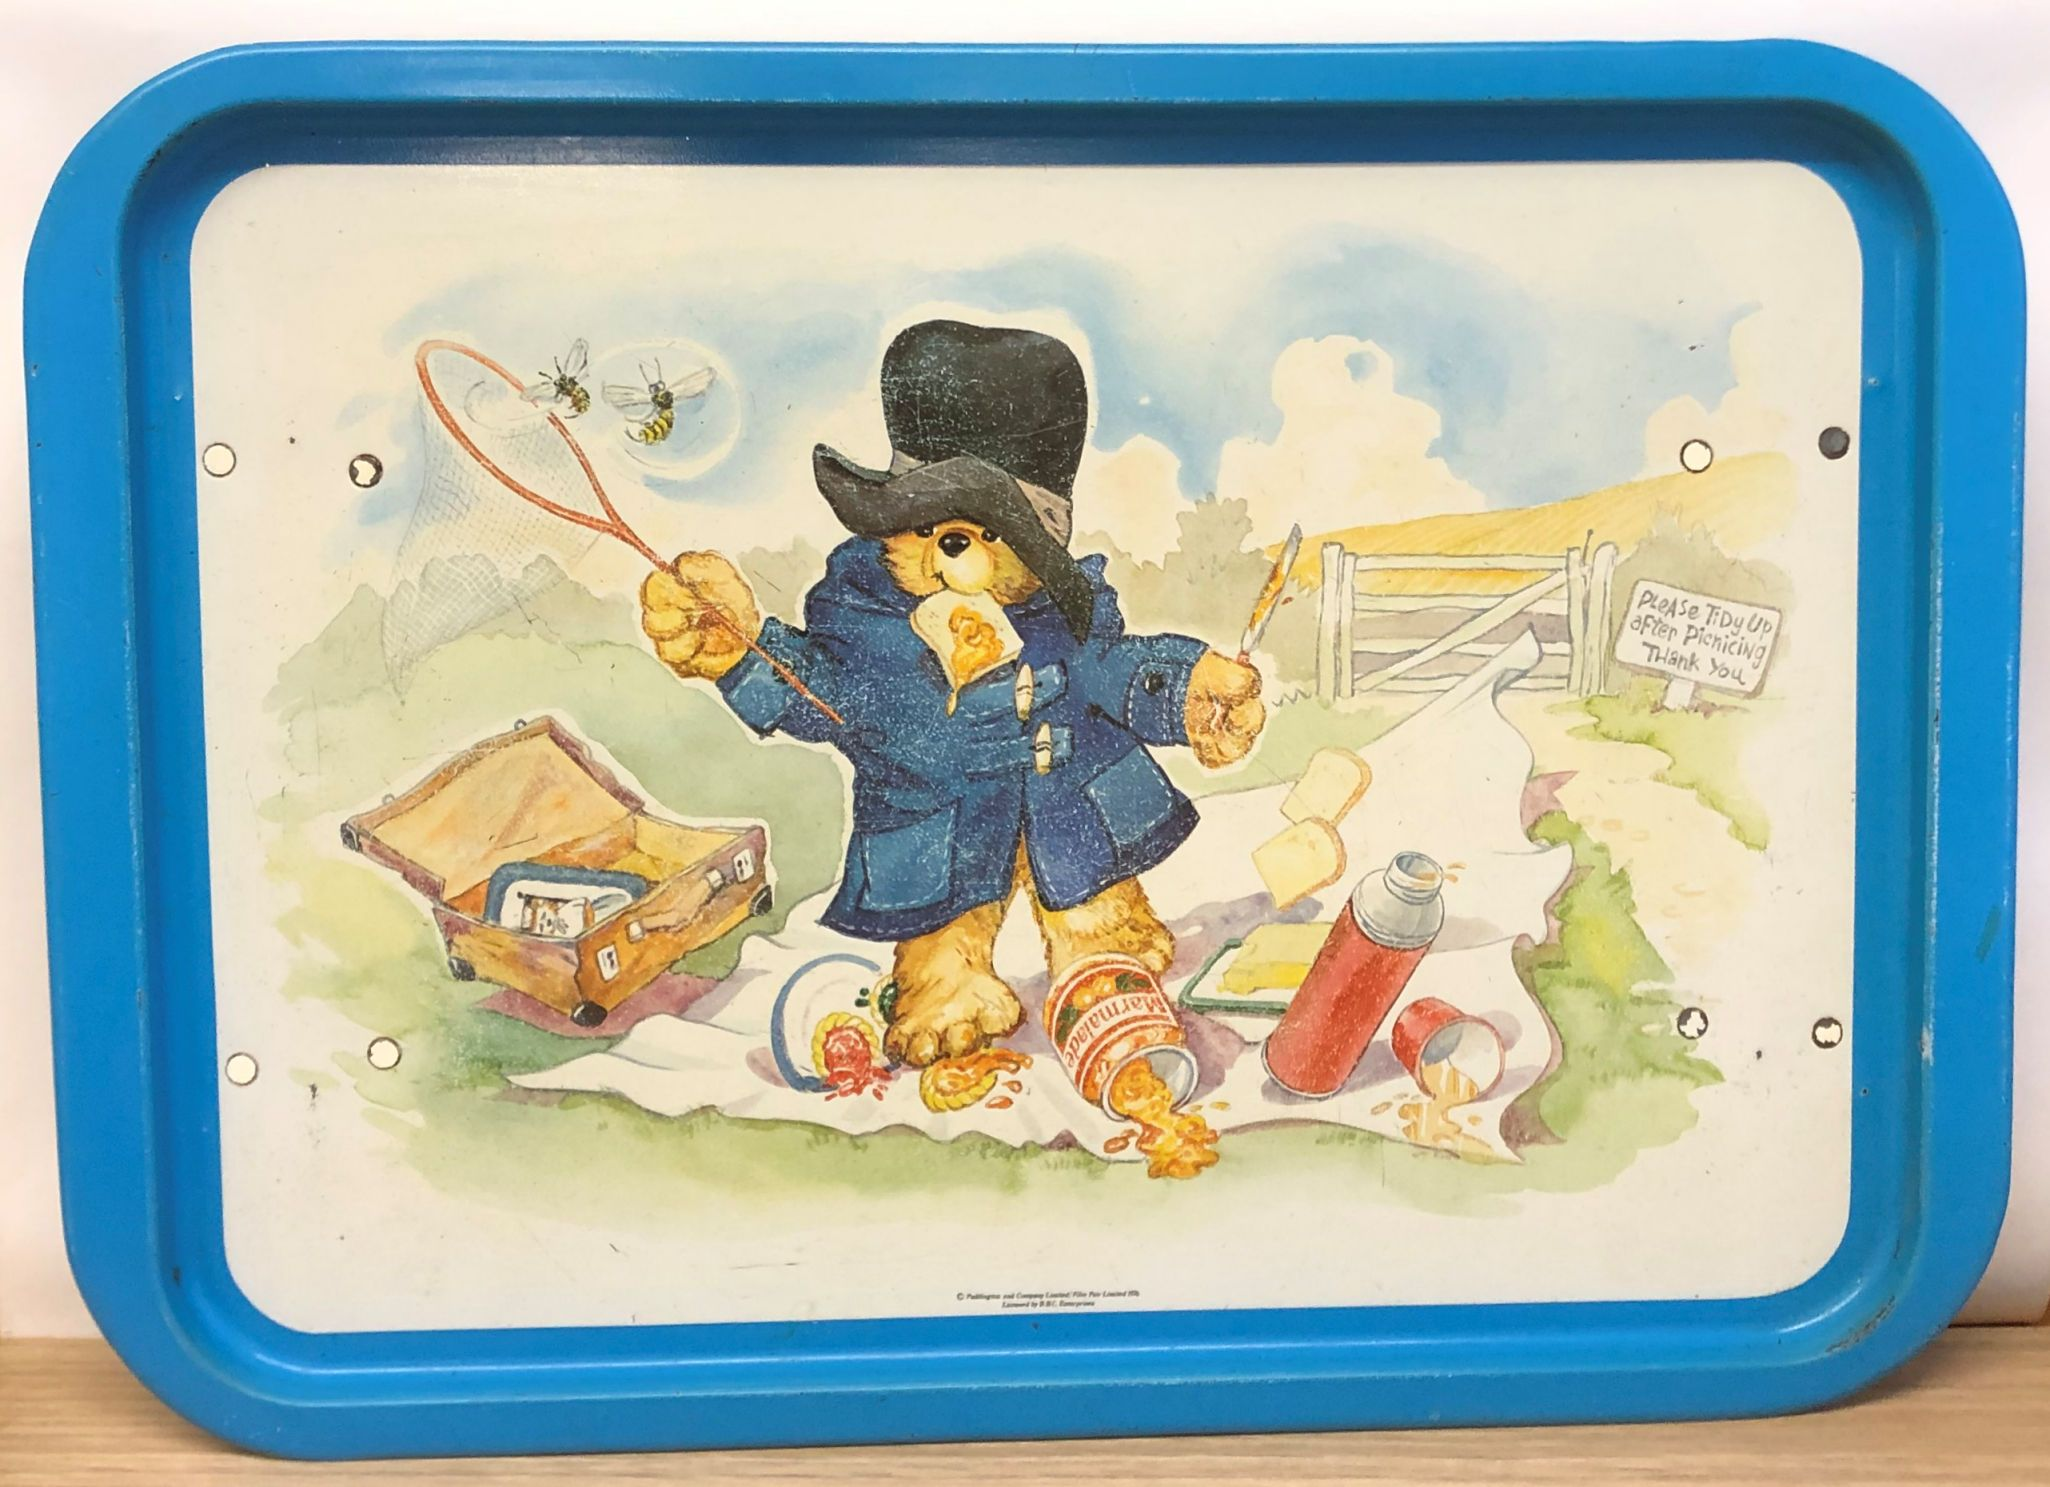 Vintage 1976 Paddington Bear Large Metal Tray With Legs Serving Play Tray Bbc Enterprises Made In England Giftcharm Paddington Bear Metal Trays Vintage